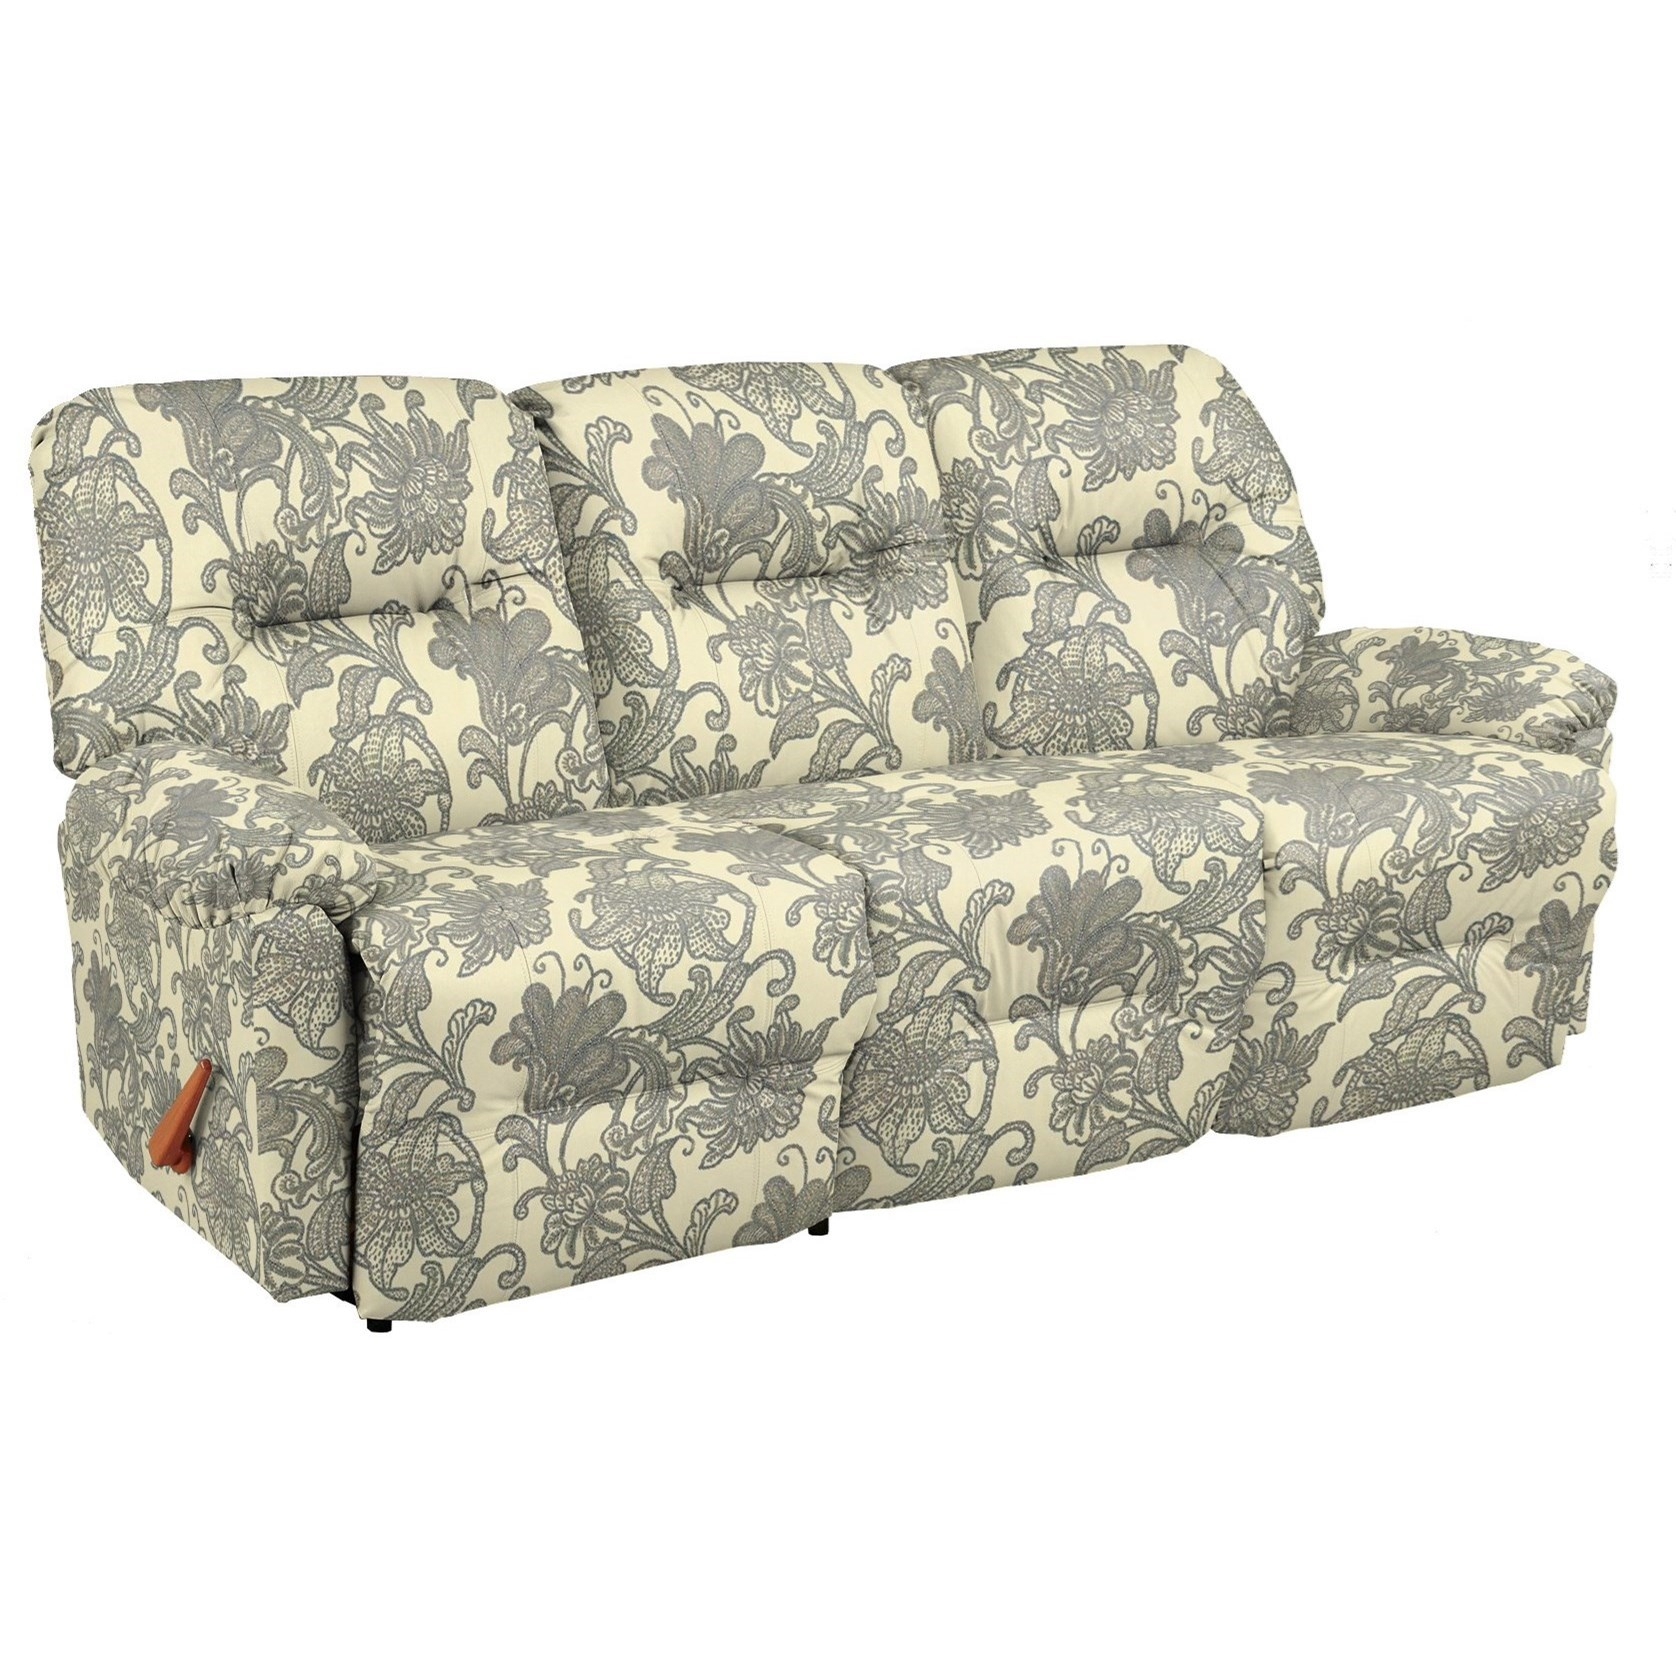 Best Home Furnishings Redford Reclining Sofa - Item Number: -679135843-28722